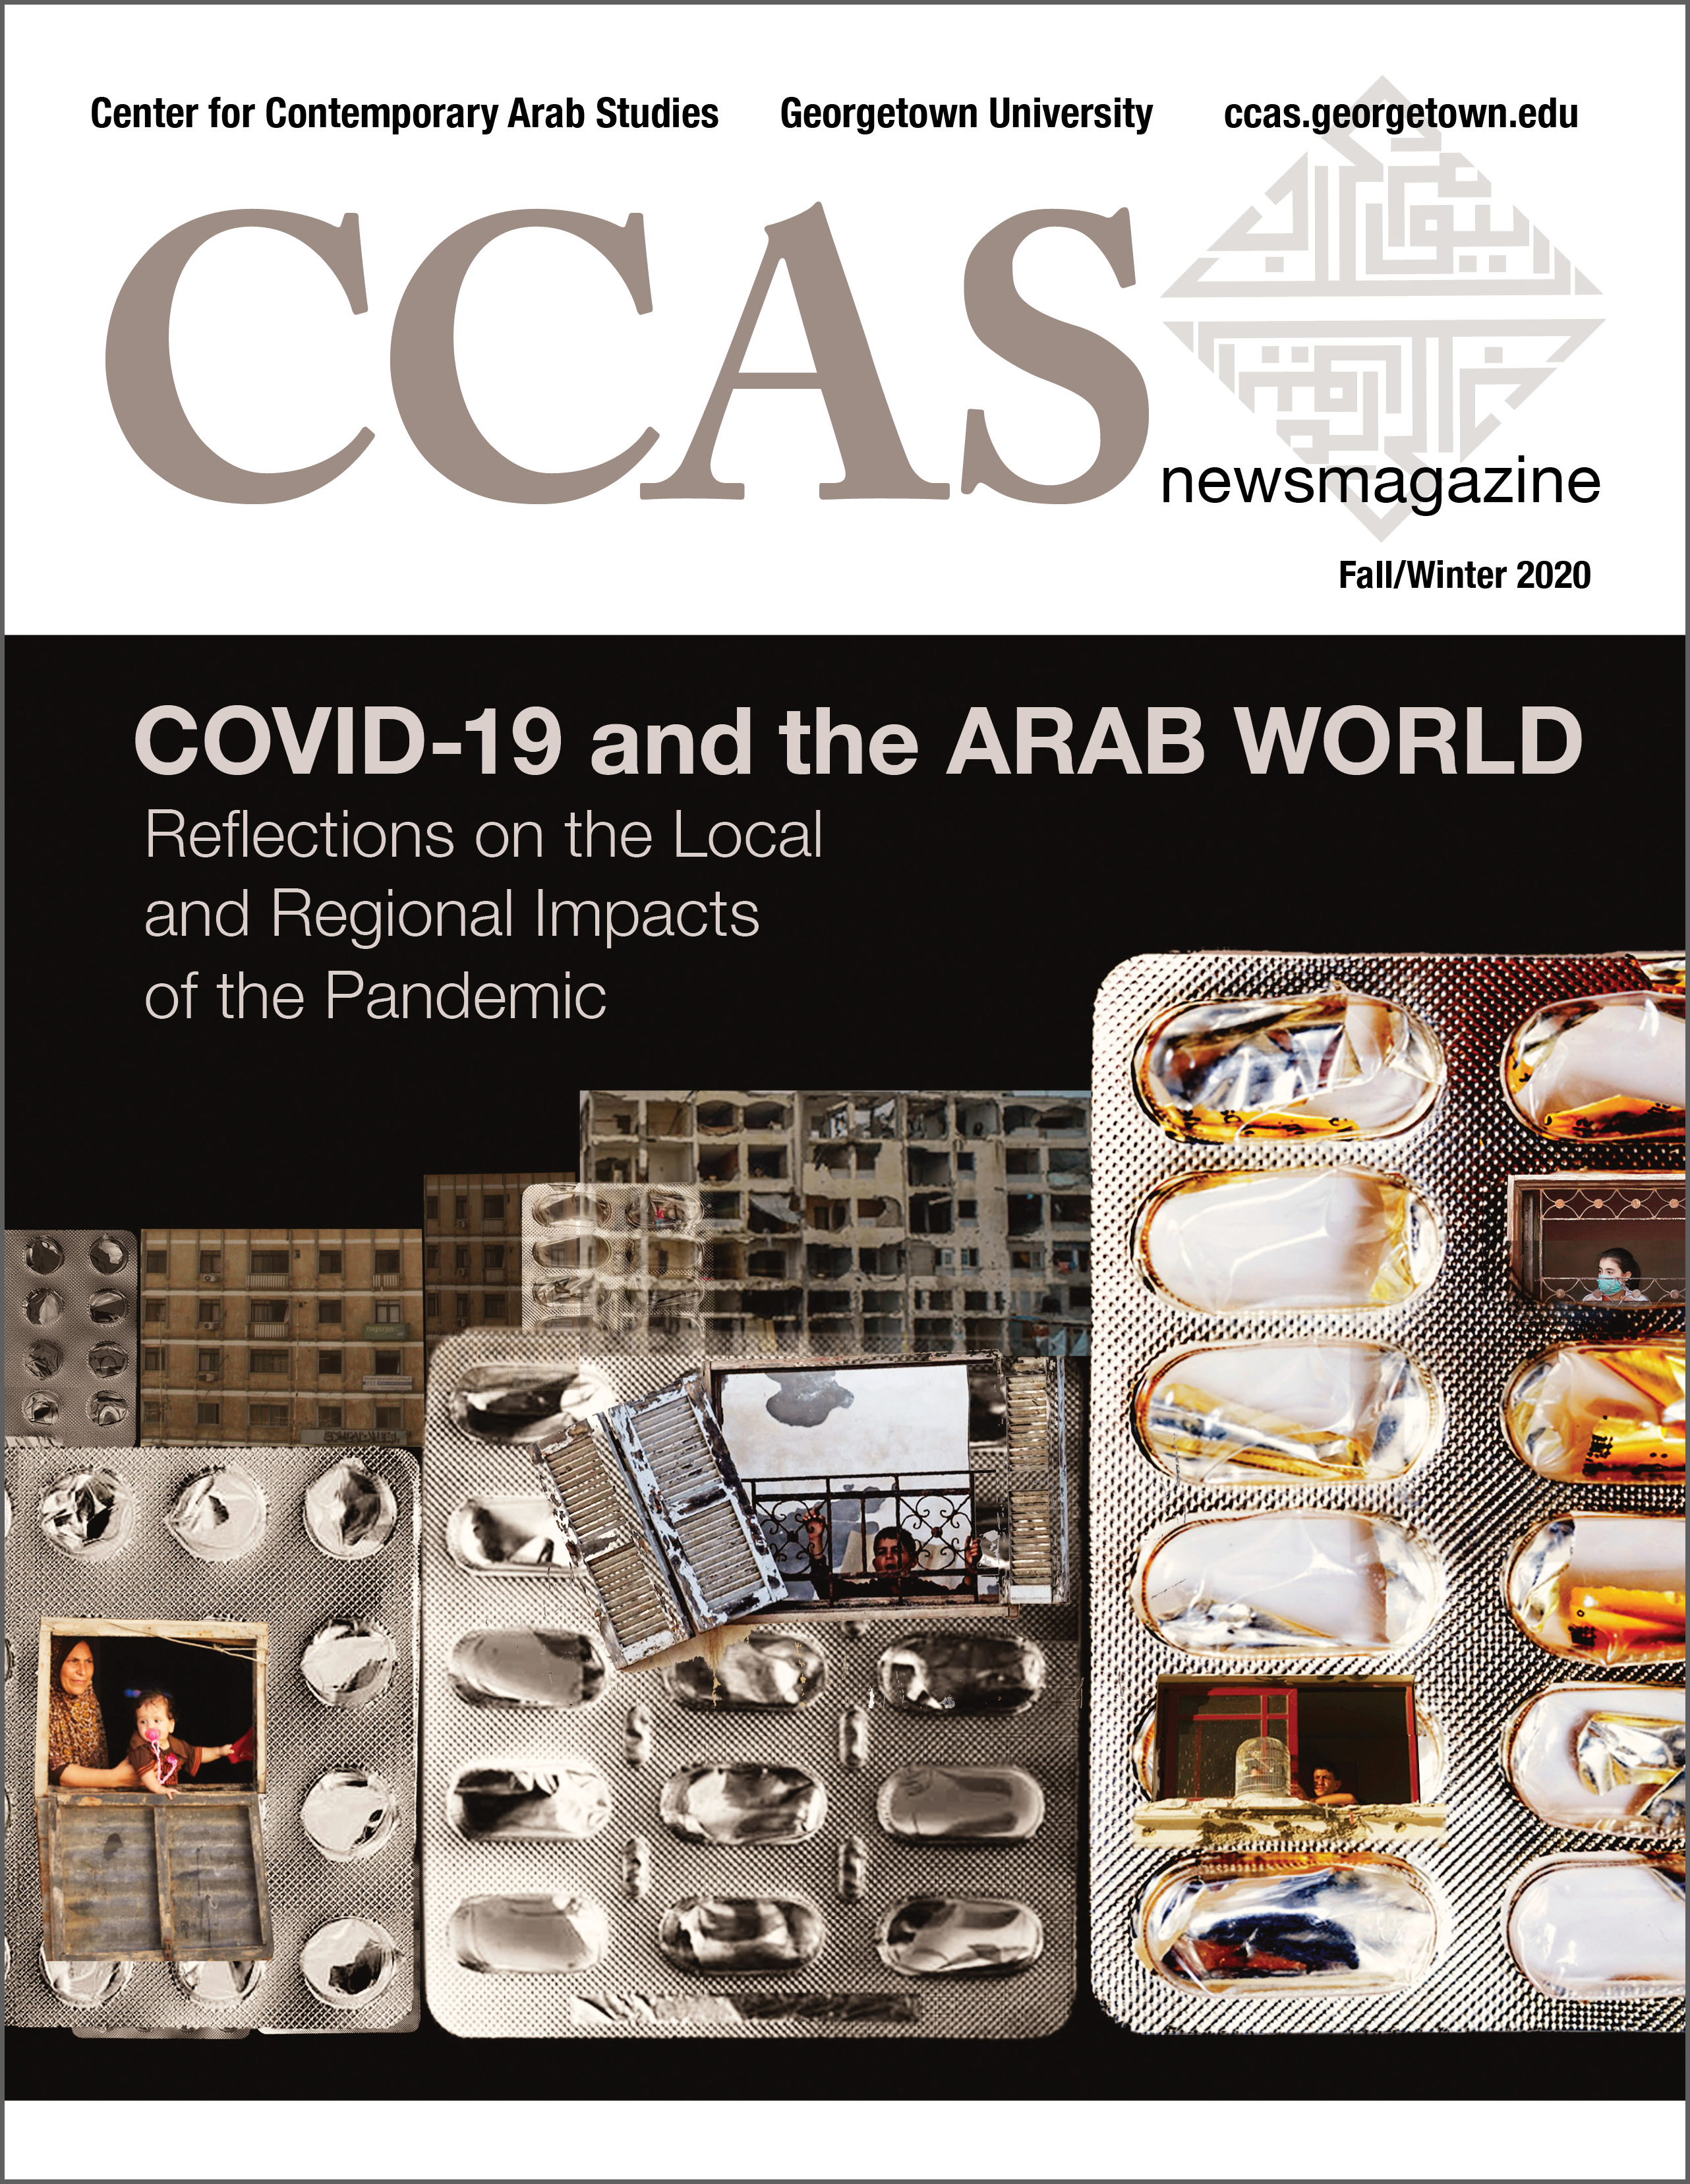 Cover of the fall 2020 issue of the CCAS Newsmagazine